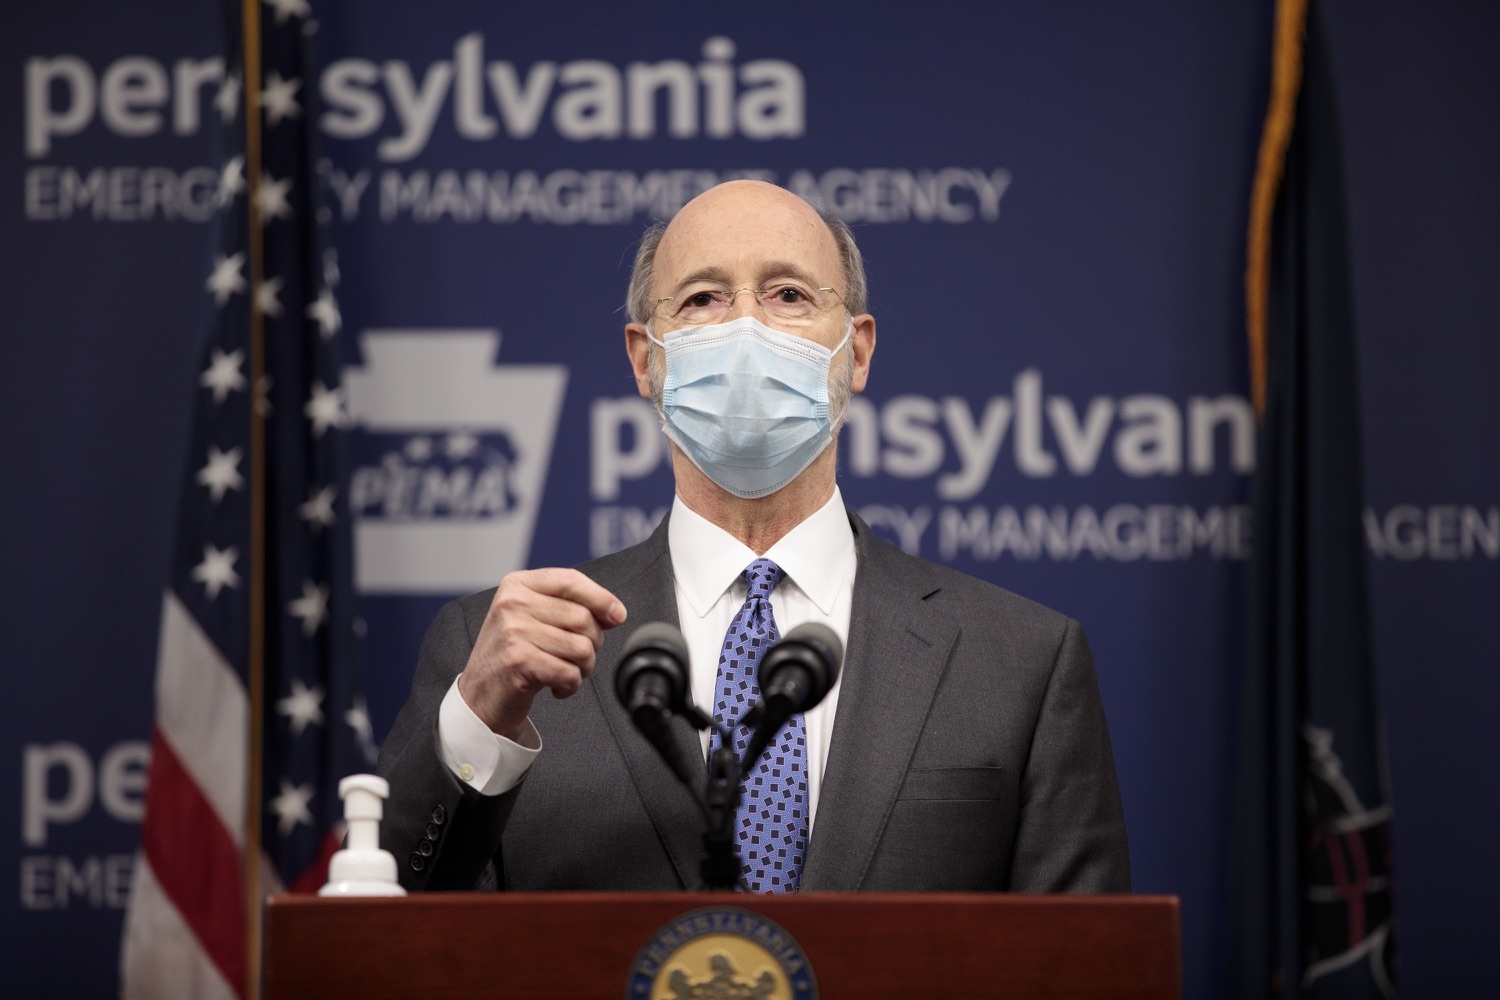 """<a href=""""https://filesource.wostreaming.net/commonwealthofpa/photo/18472_gov_vaccine_dz_01.jpg"""" target=""""_blank"""">⇣Download Photo<br></a>Pennsylvania Governor Tom Wolf speaks at the press conference.  The commonwealths COVID-19 vaccination distribution plan was designed to be fluid and flexible to meet guidance and recommendations from the federal government. Today, Governor Tom Wolf and Secretary of Health Dr. Rachel Levine announced the fourth version of the plan, detailing the updates and how the state is working to ensure safe, swift implementation. Harrisburg, PA  January 8, 2021"""